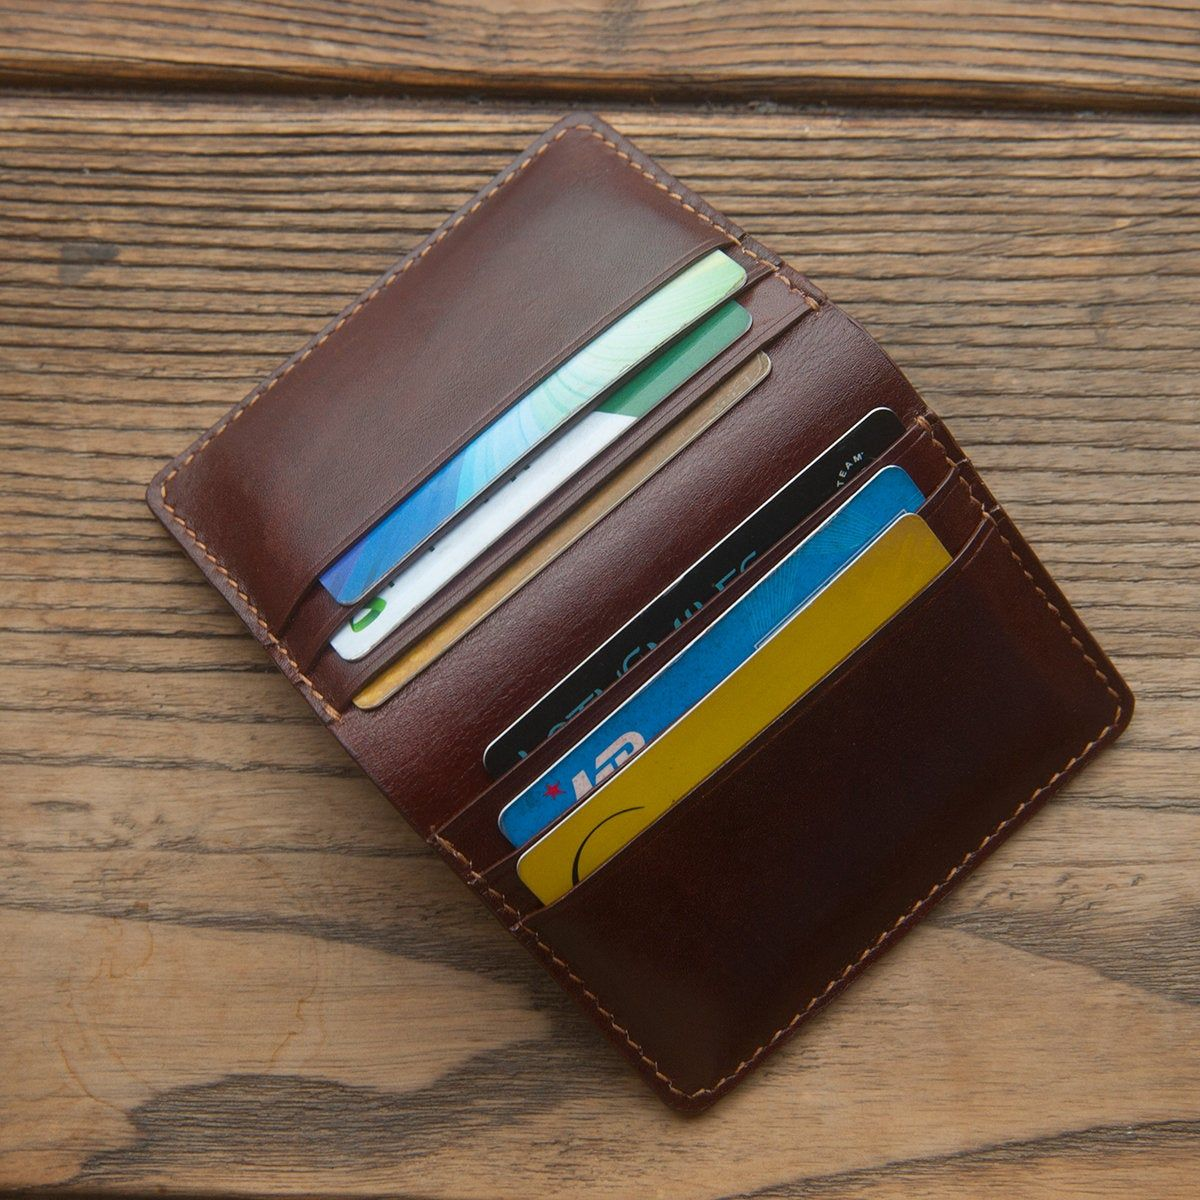 Handmade Leather Wallet Business Card Cases Card Holder Etsy Handmade Leather Wallet Leather Card Wallet Leather Business Card Case